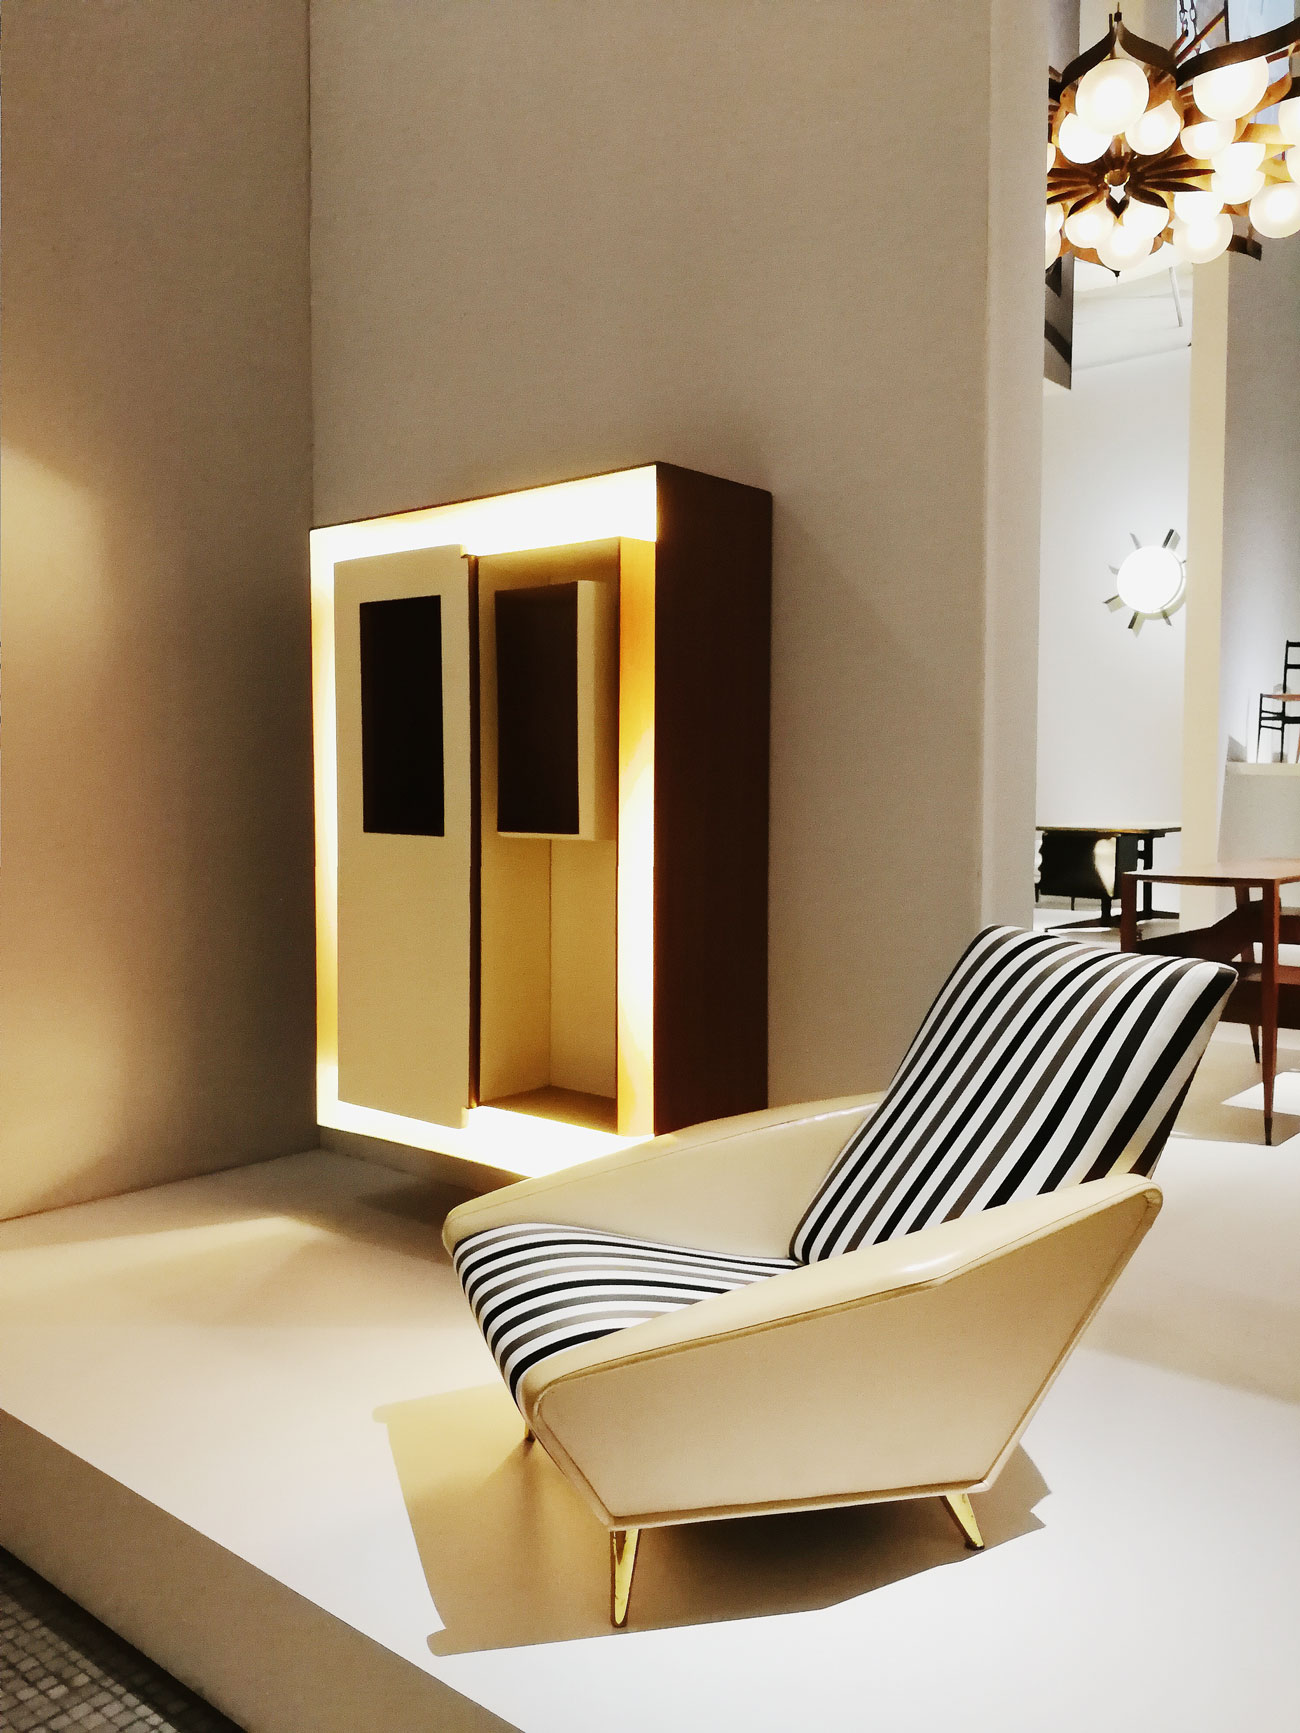 Design Father's - Gio Ponti Legacy Celebrated in Paris - www.AuthenticInterior.com INTERIOR DESIGN BLOG&STUDIO